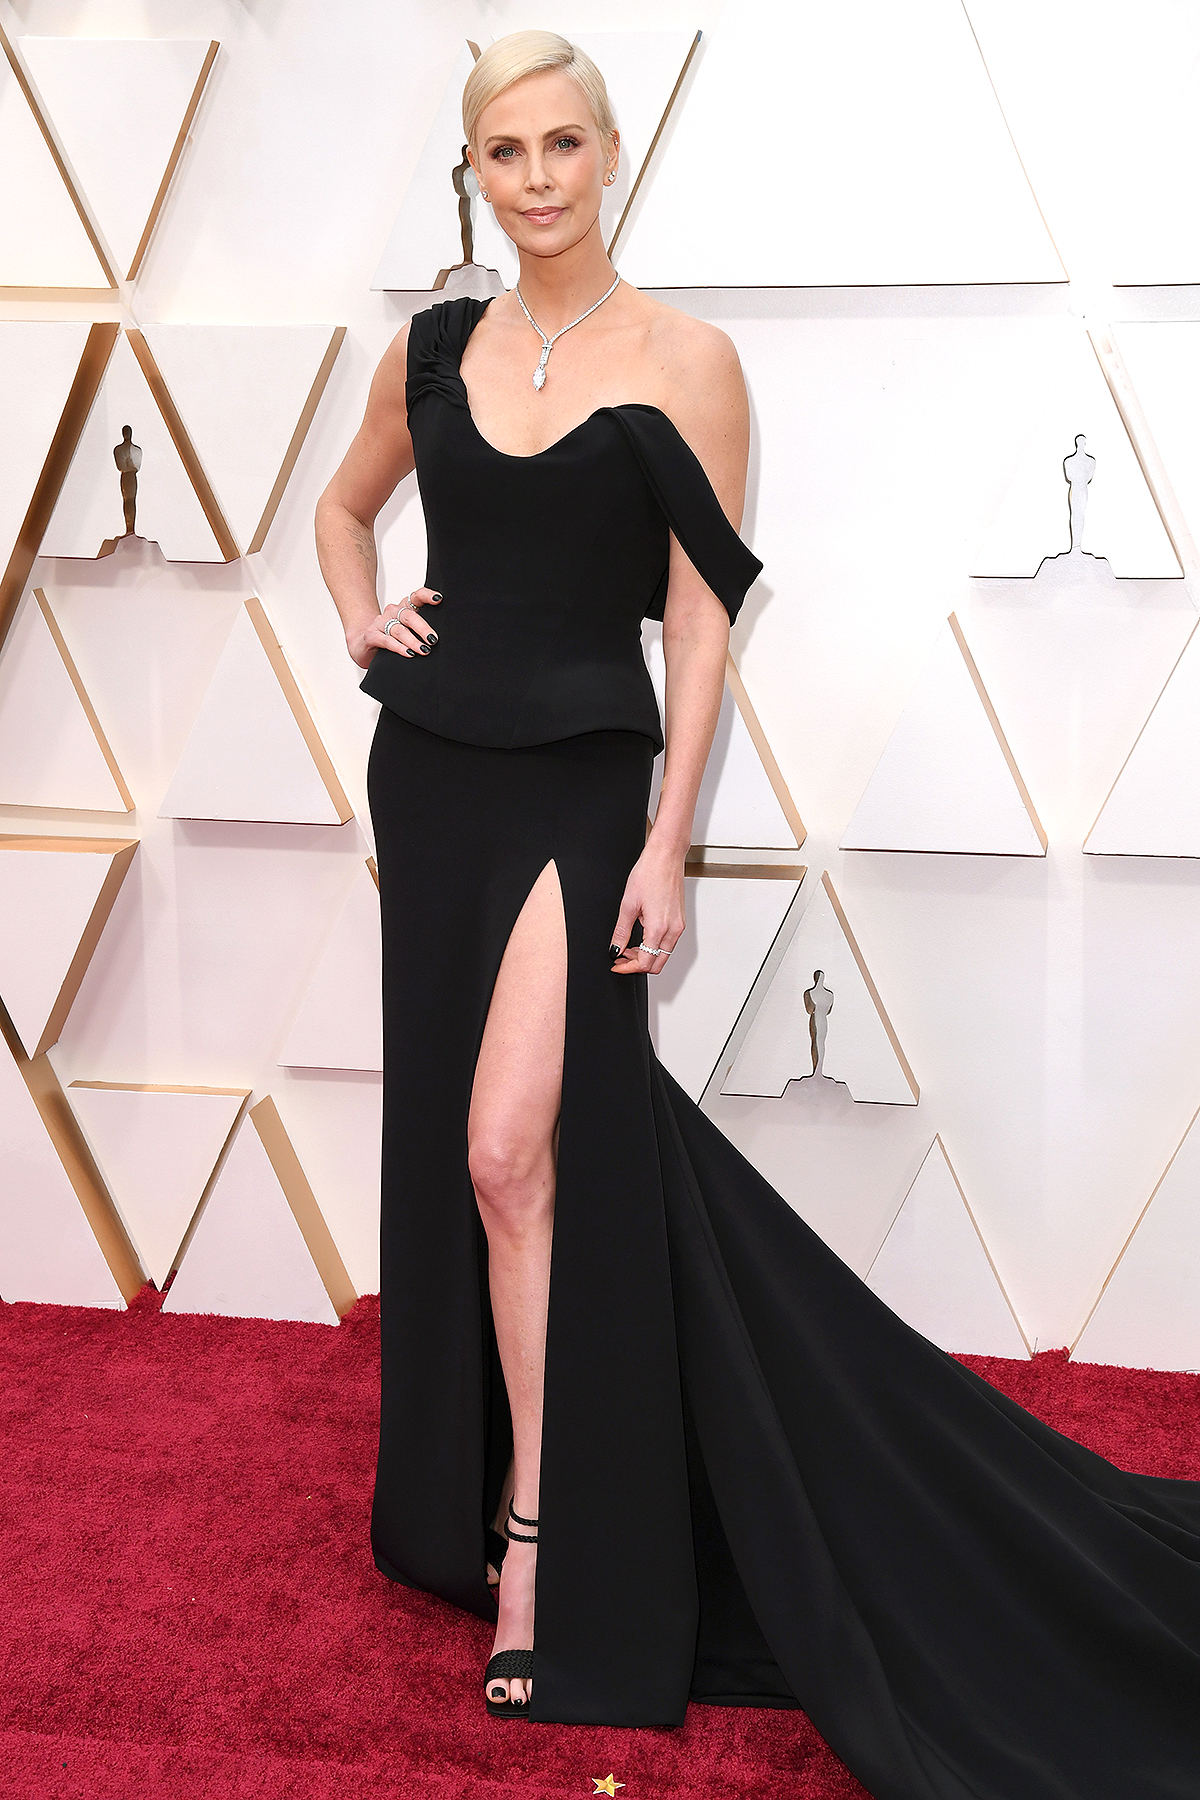 92nd Annual Academy Awards, Arrivals, Los Angeles, USA - 09 Feb 2020